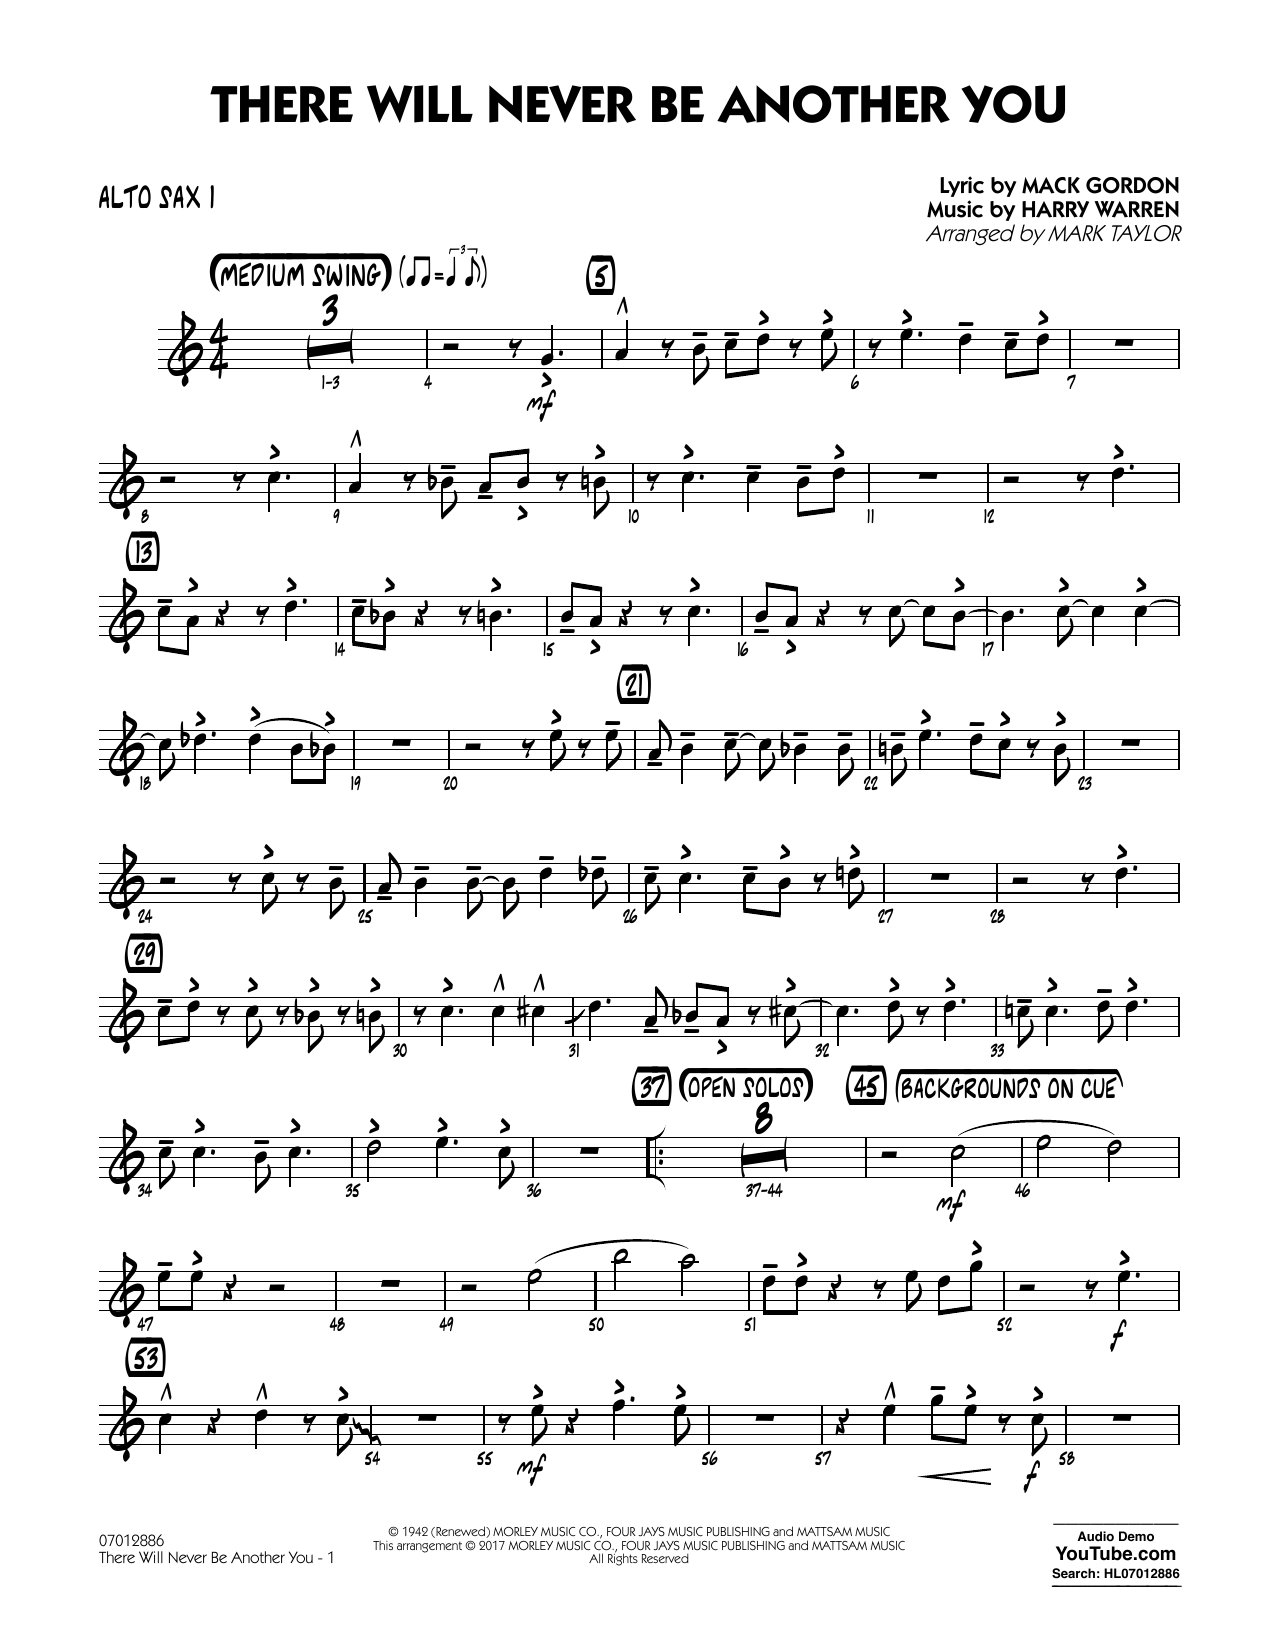 There Will Never Be Another You - Alto Sax 1 Sheet Music